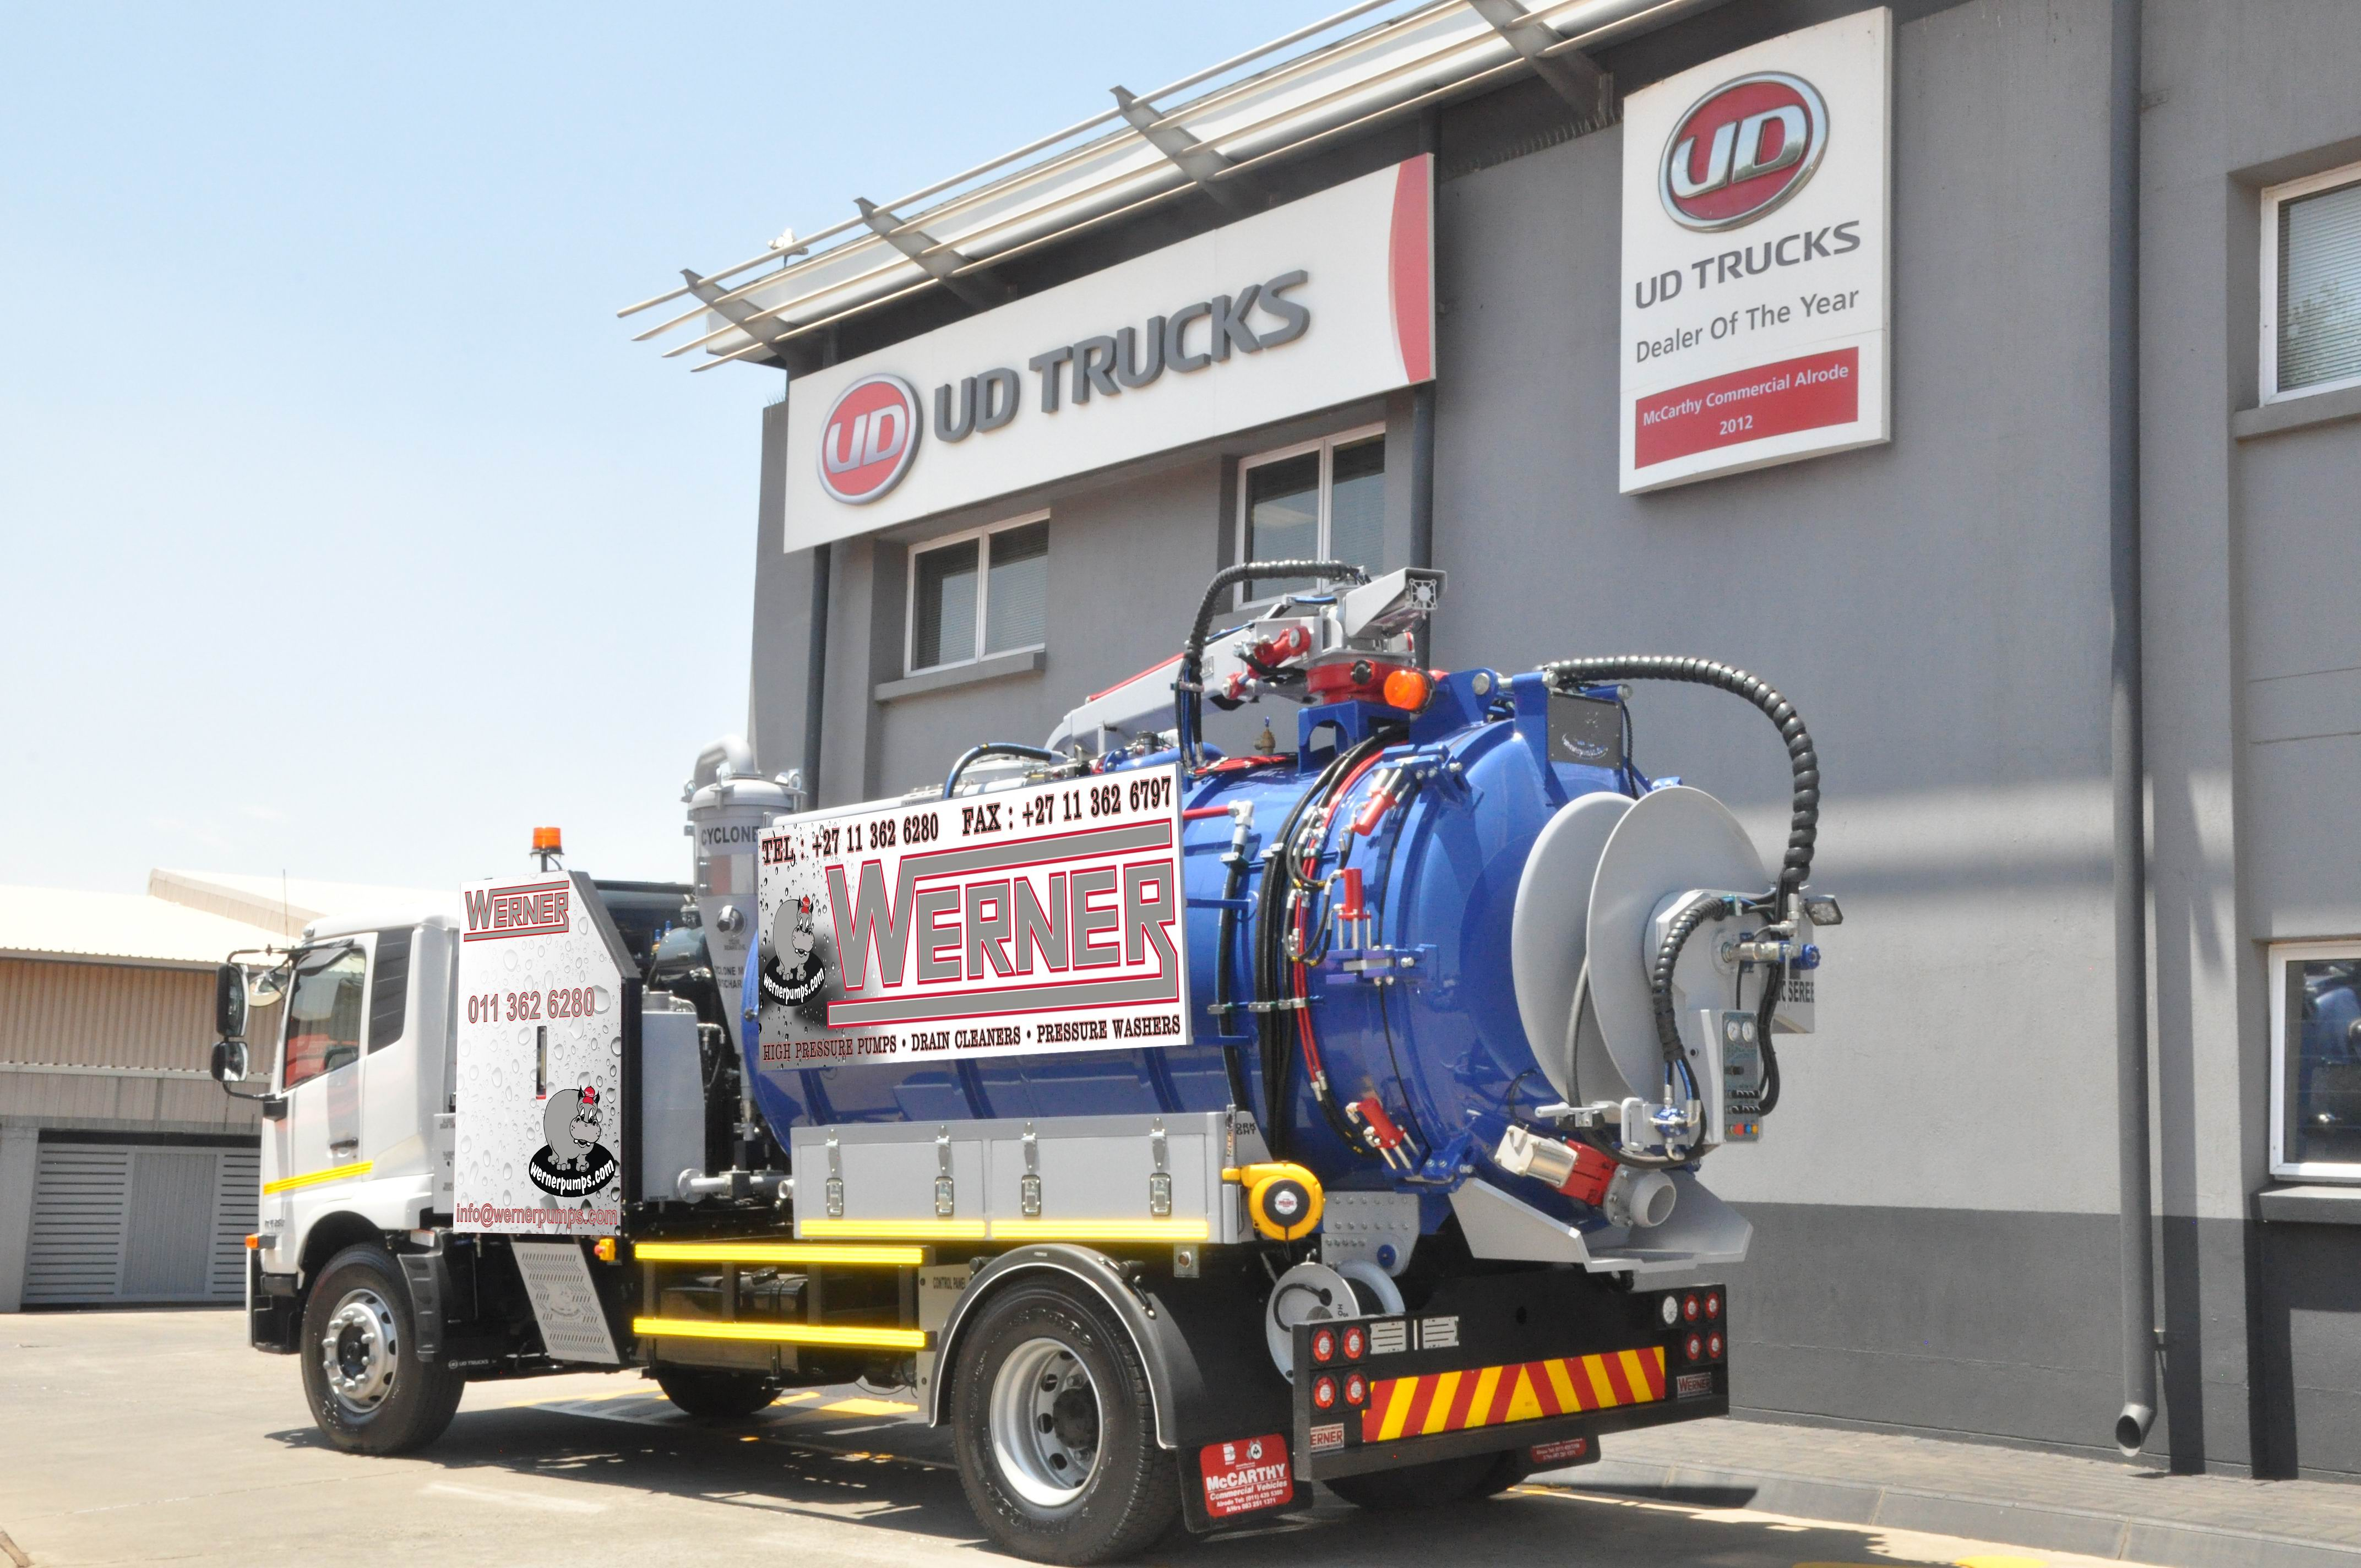 Keeping The Line Clear With Quality Sanitation Equipment